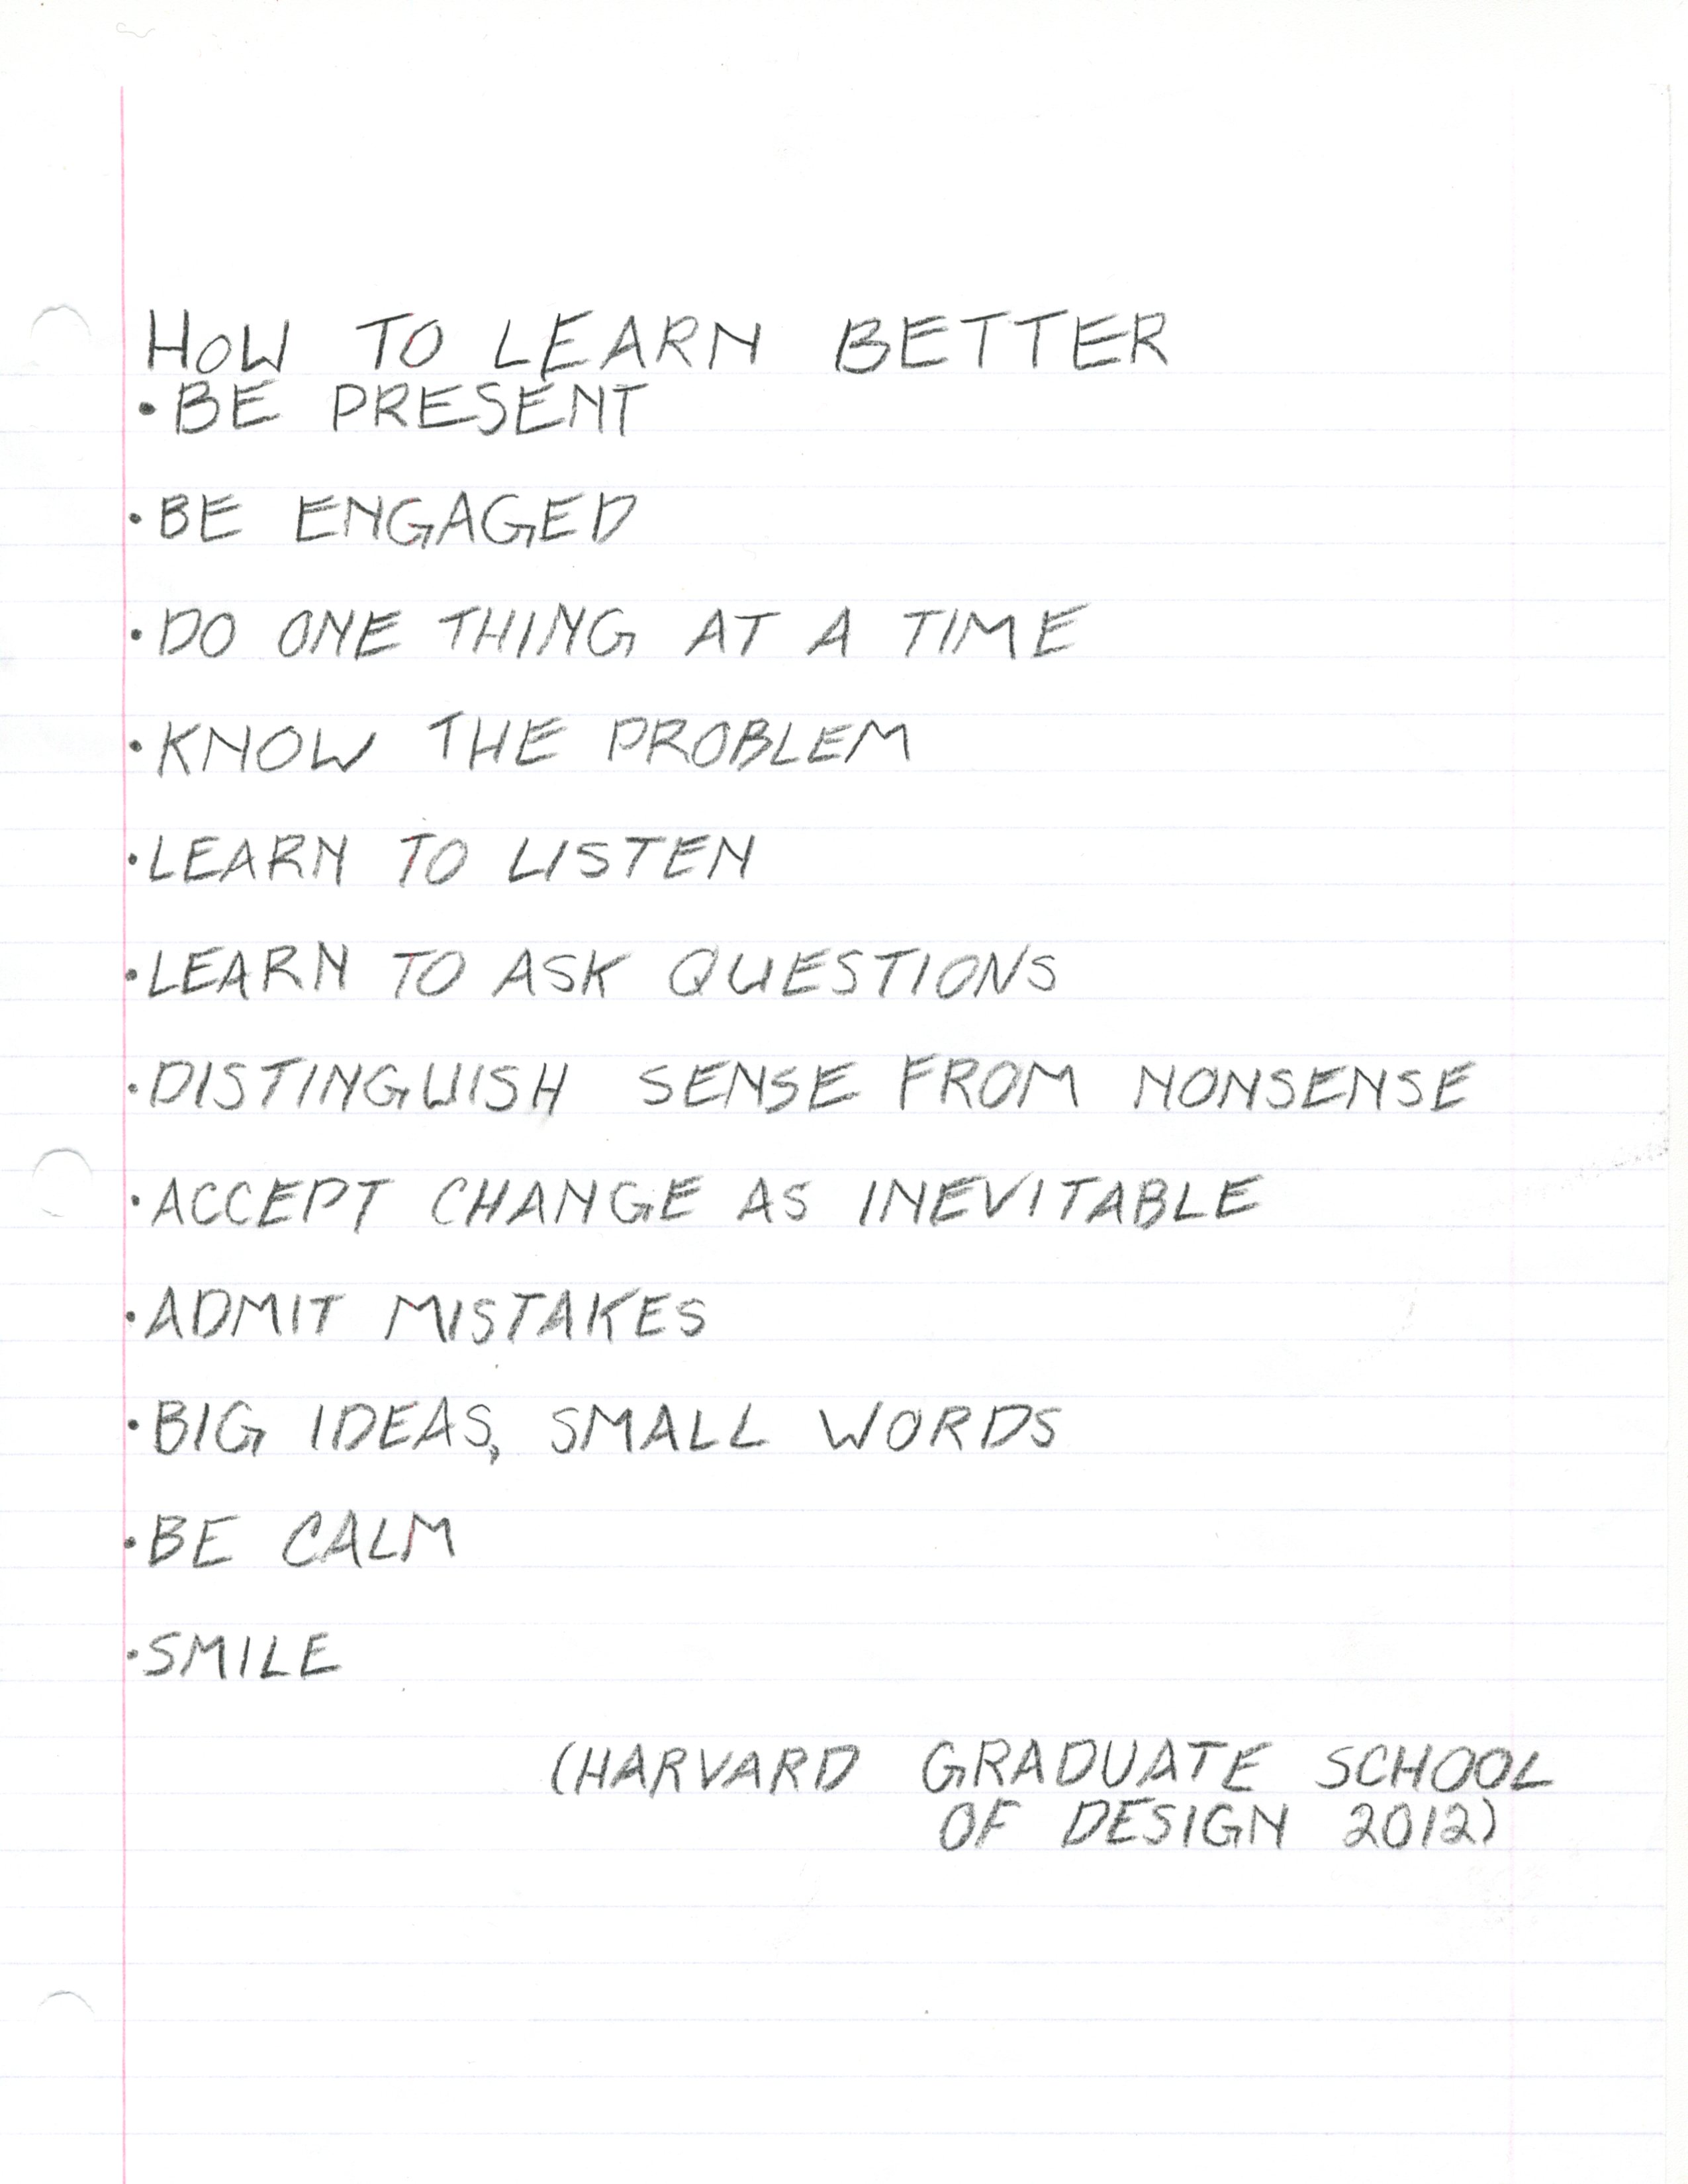 How to learn better002.jpg?1354674946139